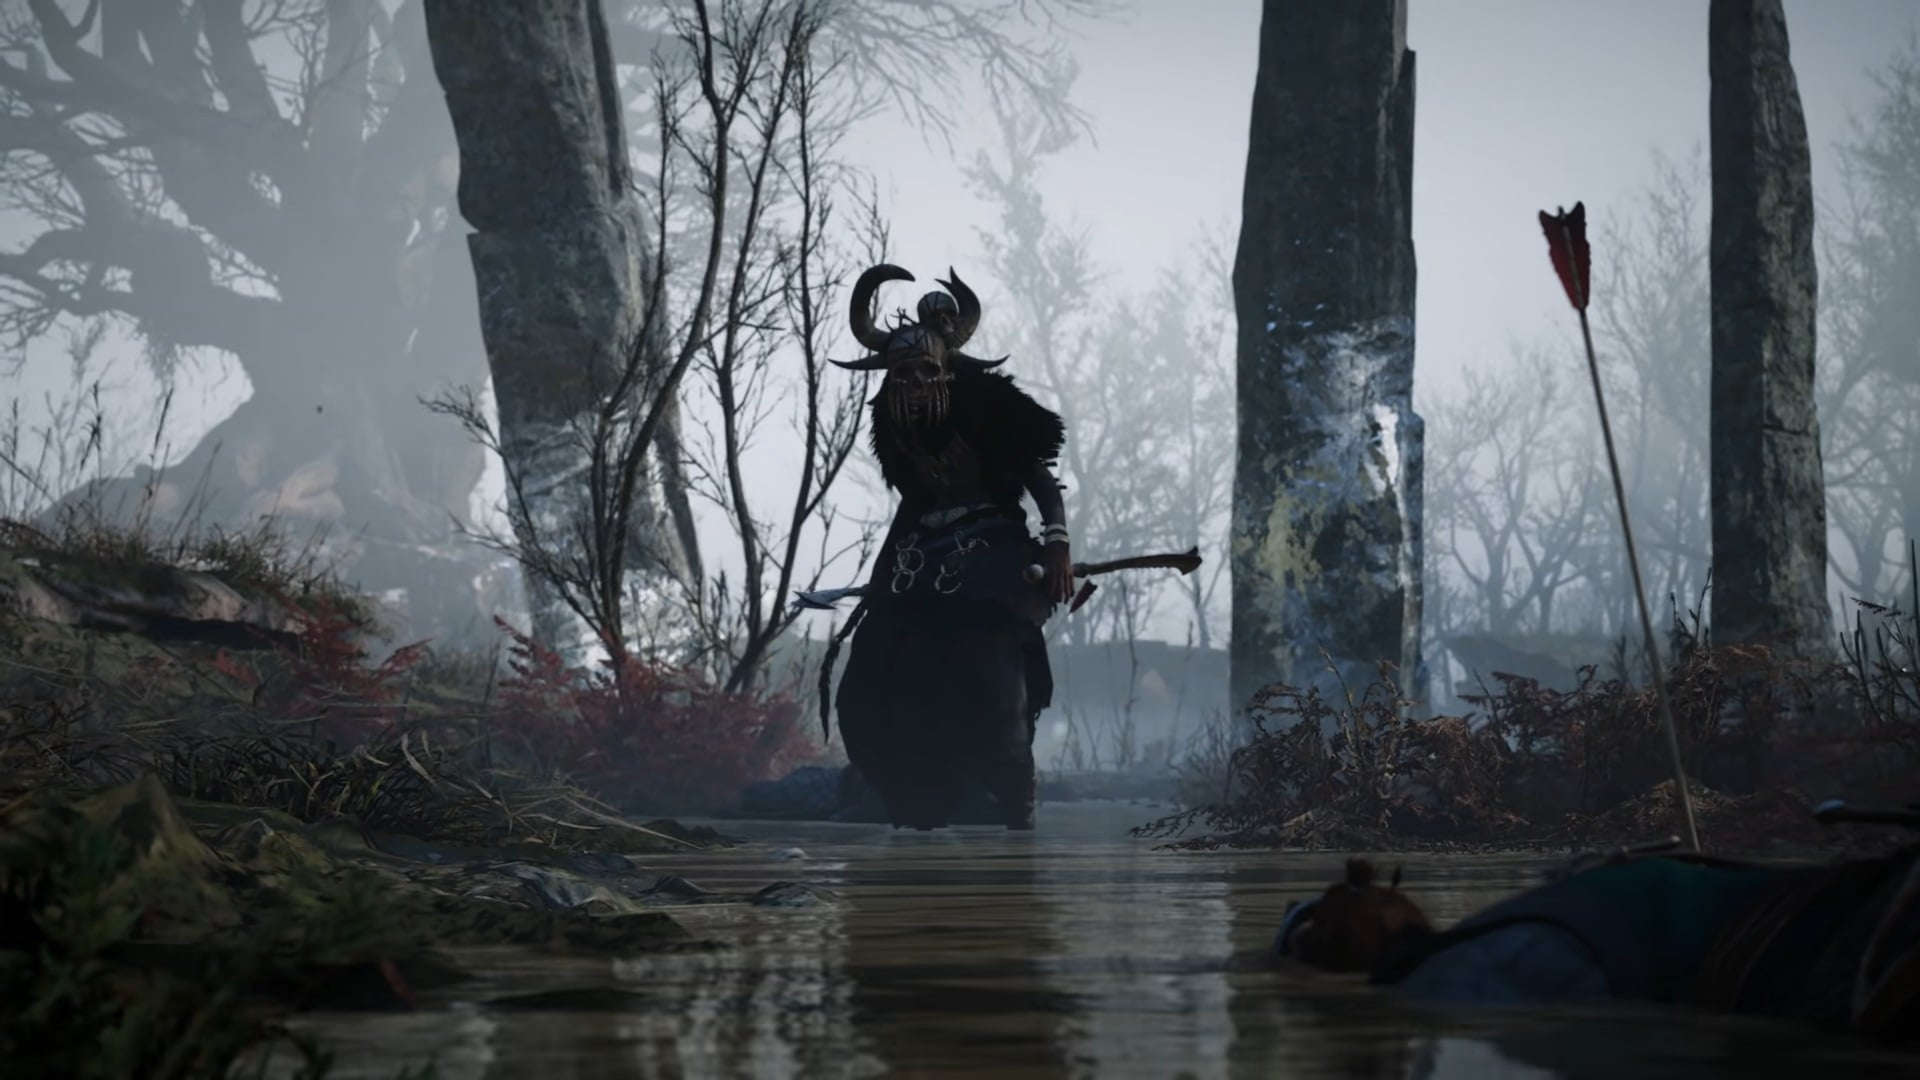 Assassin's Creed Valhalla: The Wrath of the Druids Review - Antagonista